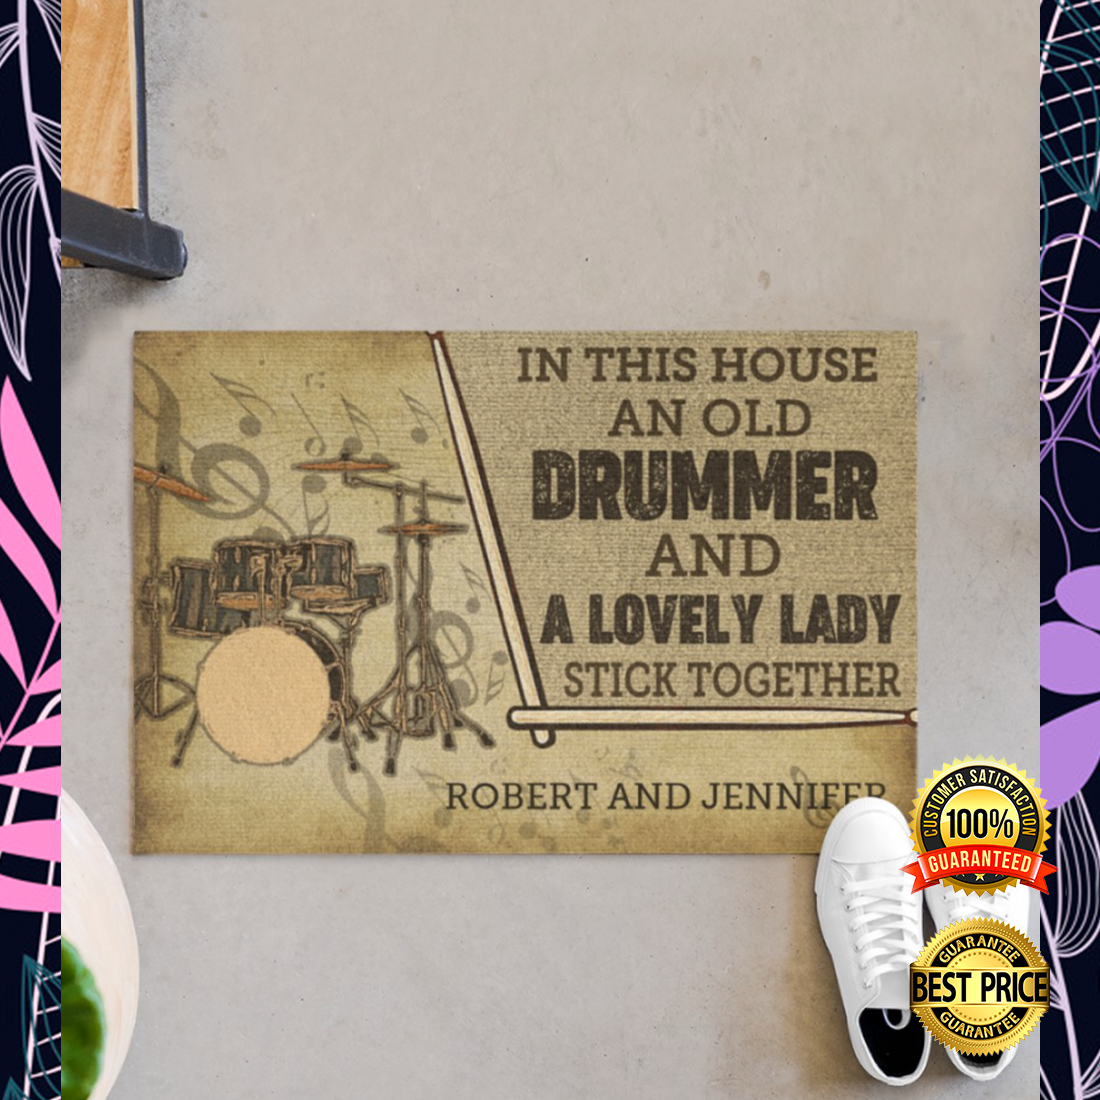 [CHEAPEST] PERSONZALIZED IN THIS HOUSE AN OLD DRUMMER AND A LOVELY LADY STICK TOGETHER DOORMAT